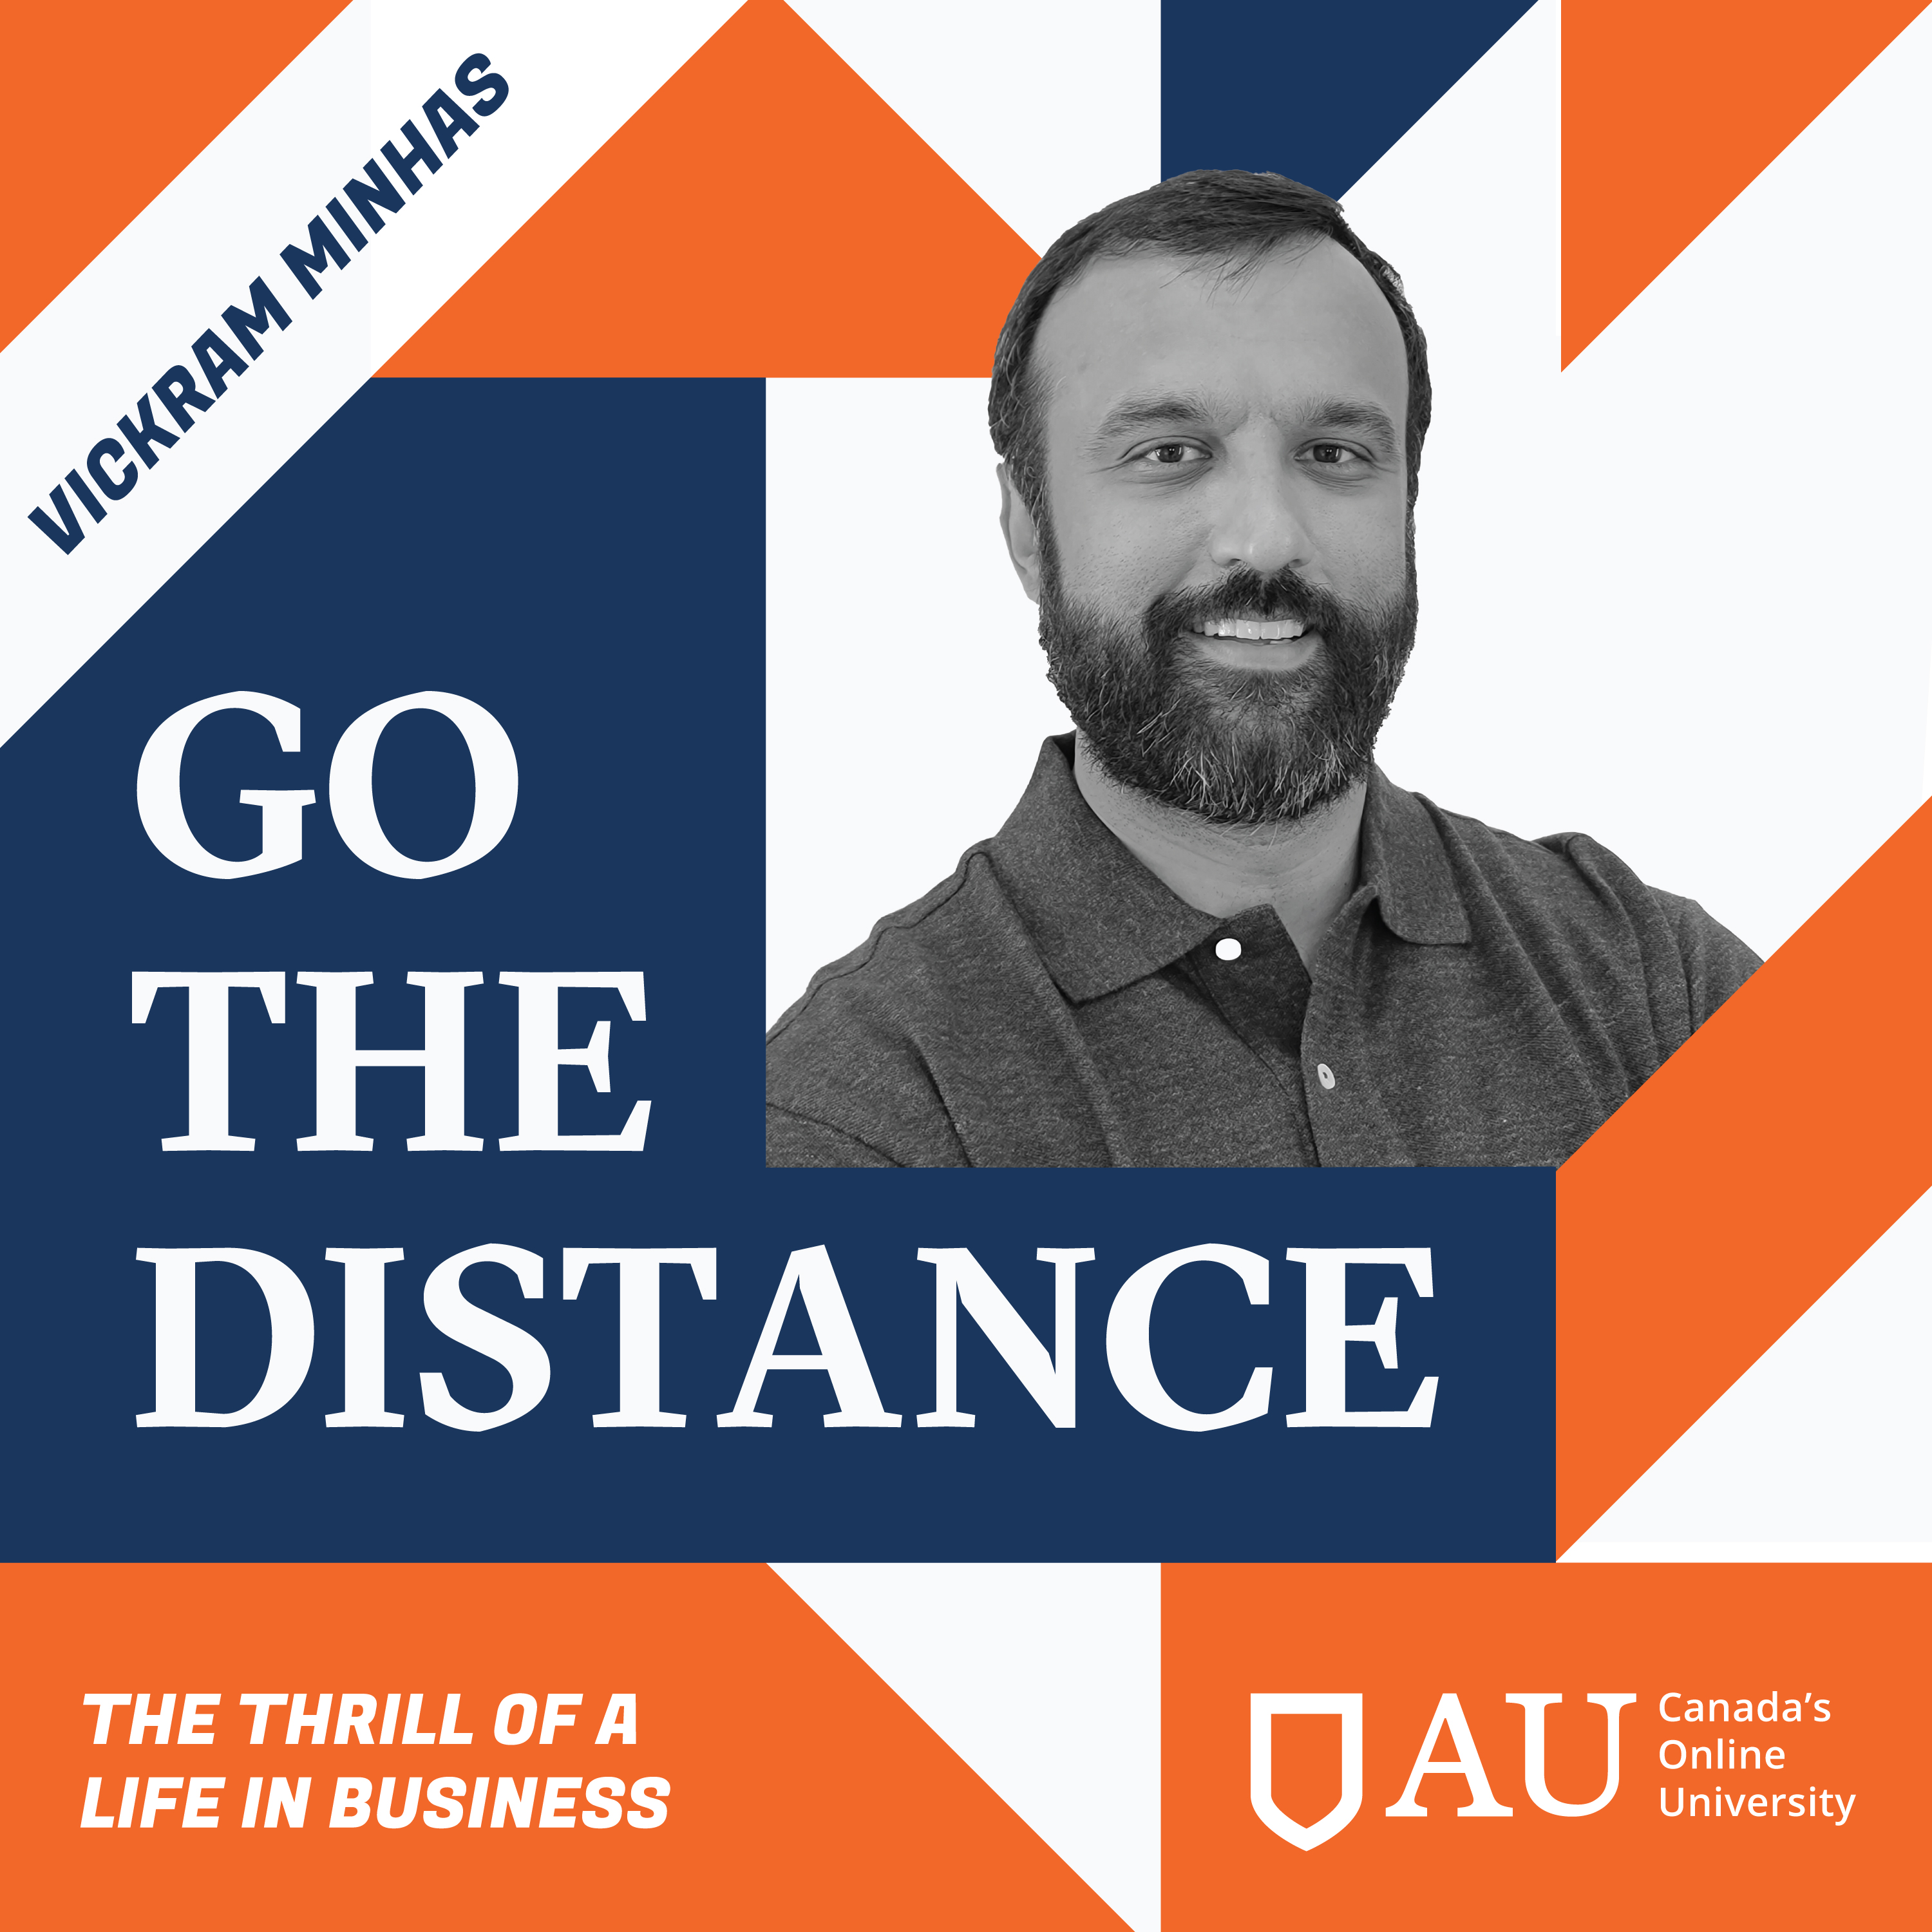 Artwork for podcast Go the Distance